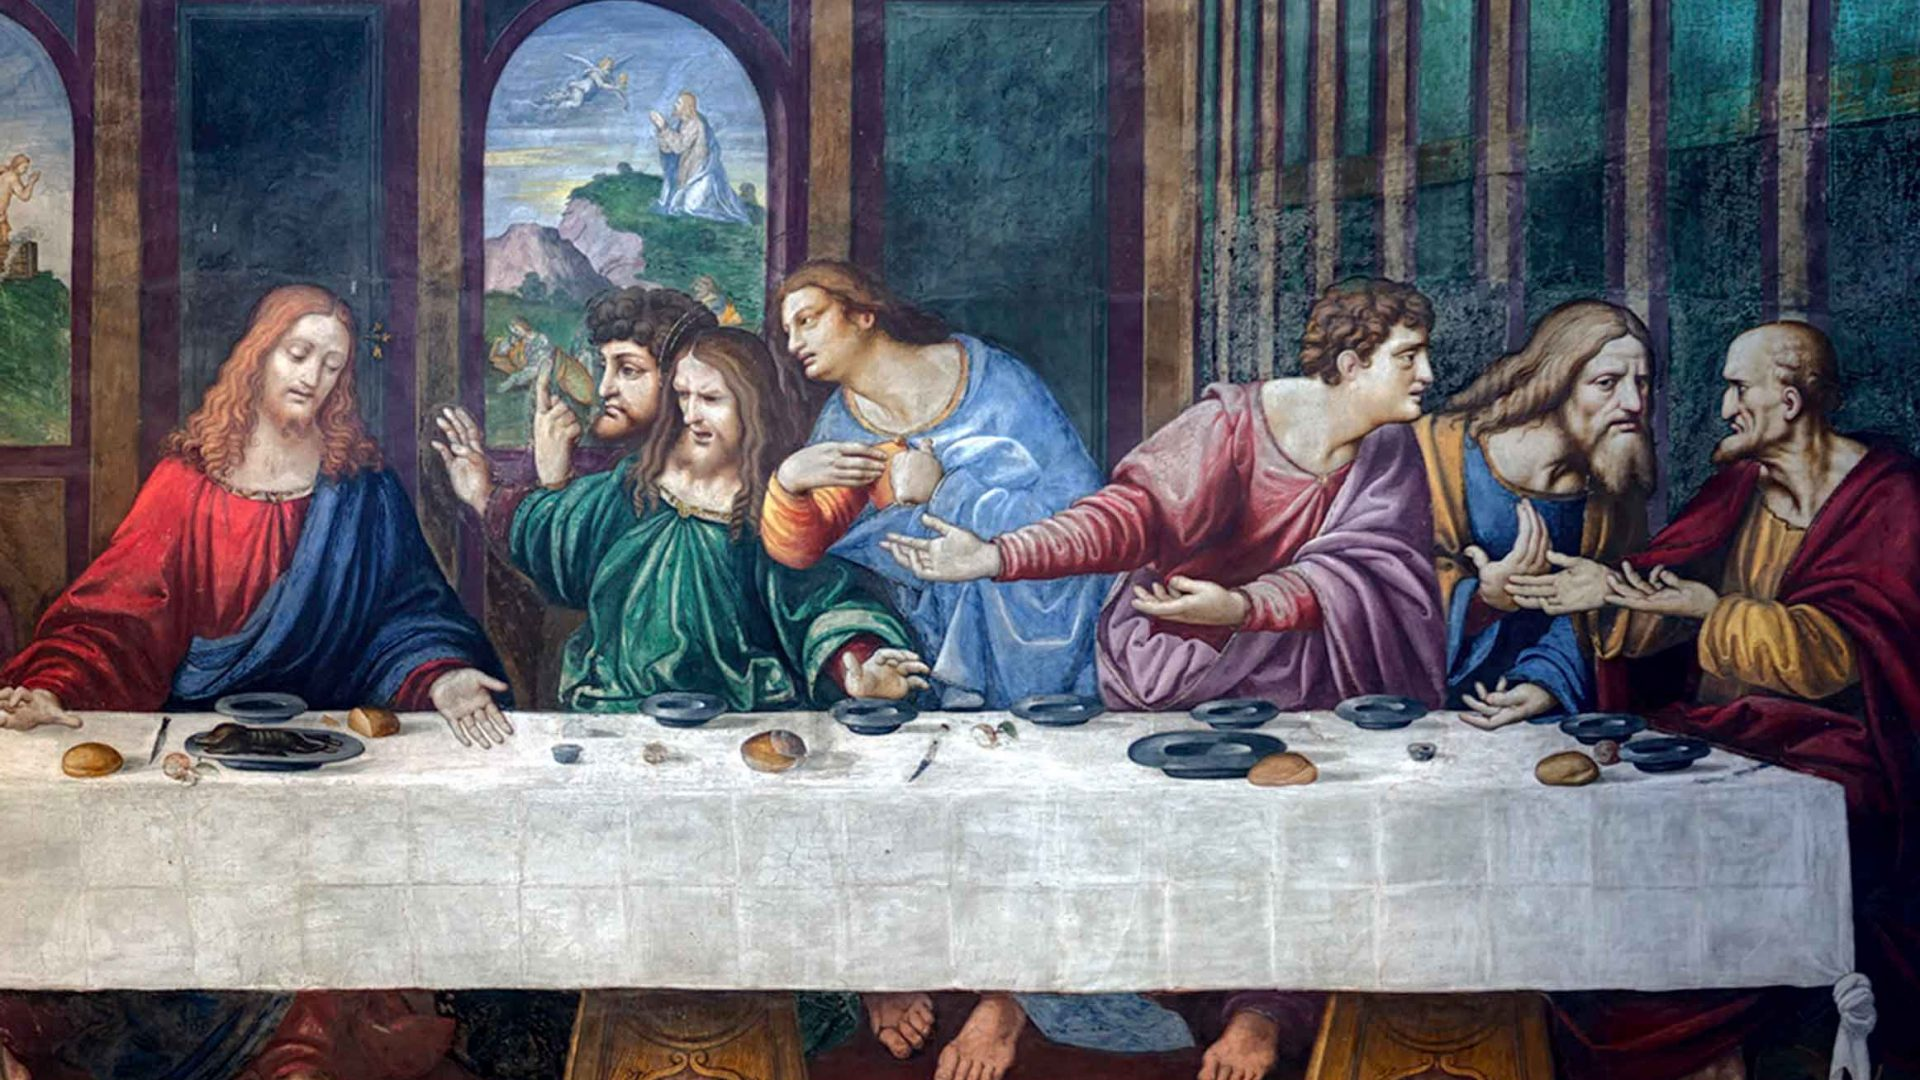 Copies and Derivations of the Last Supper